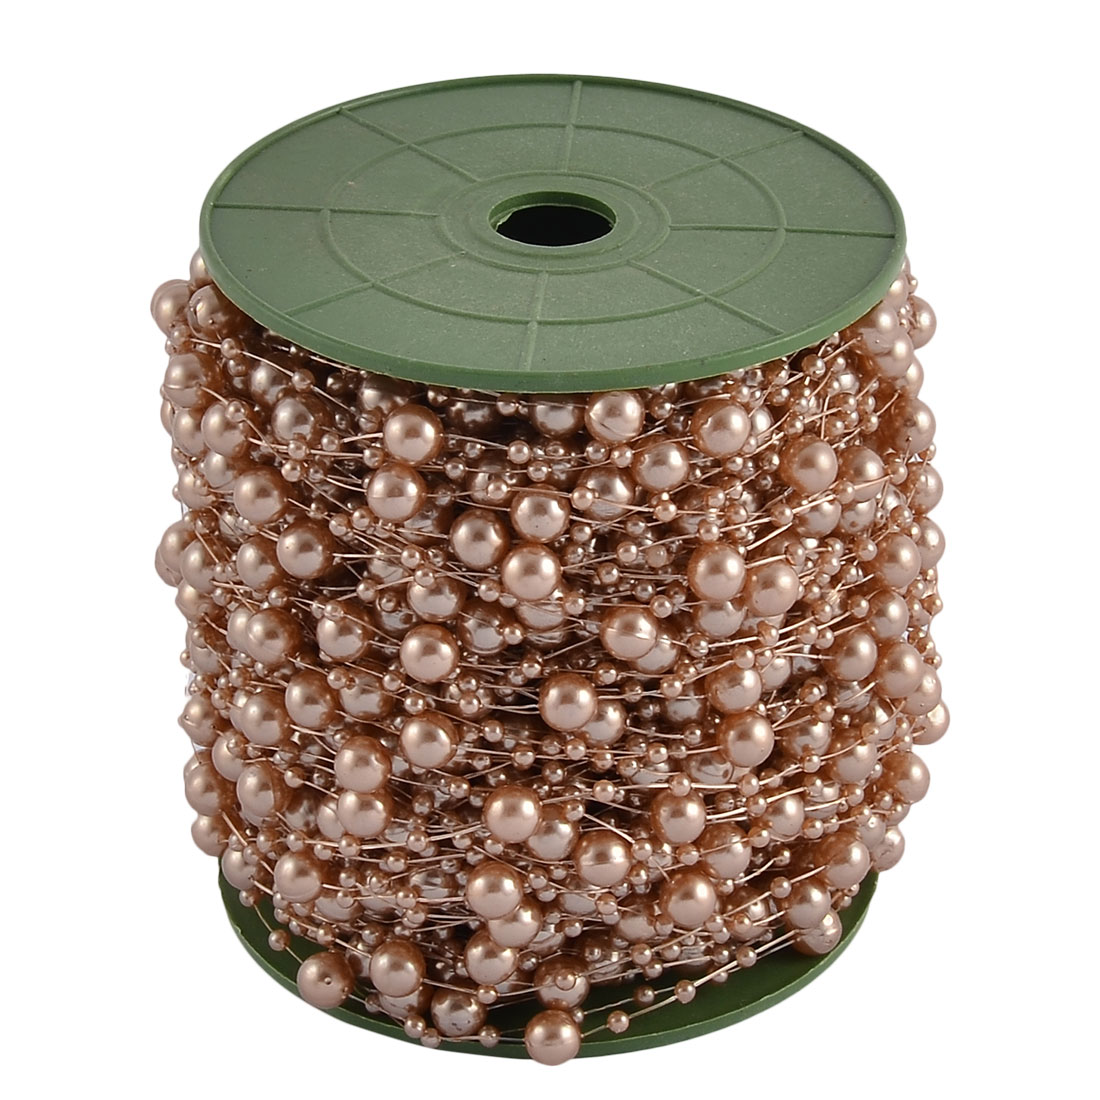 Festival Party Crafting DIY Garland Flower Table Decoration Imitation Pearl Beads String Roll Tan